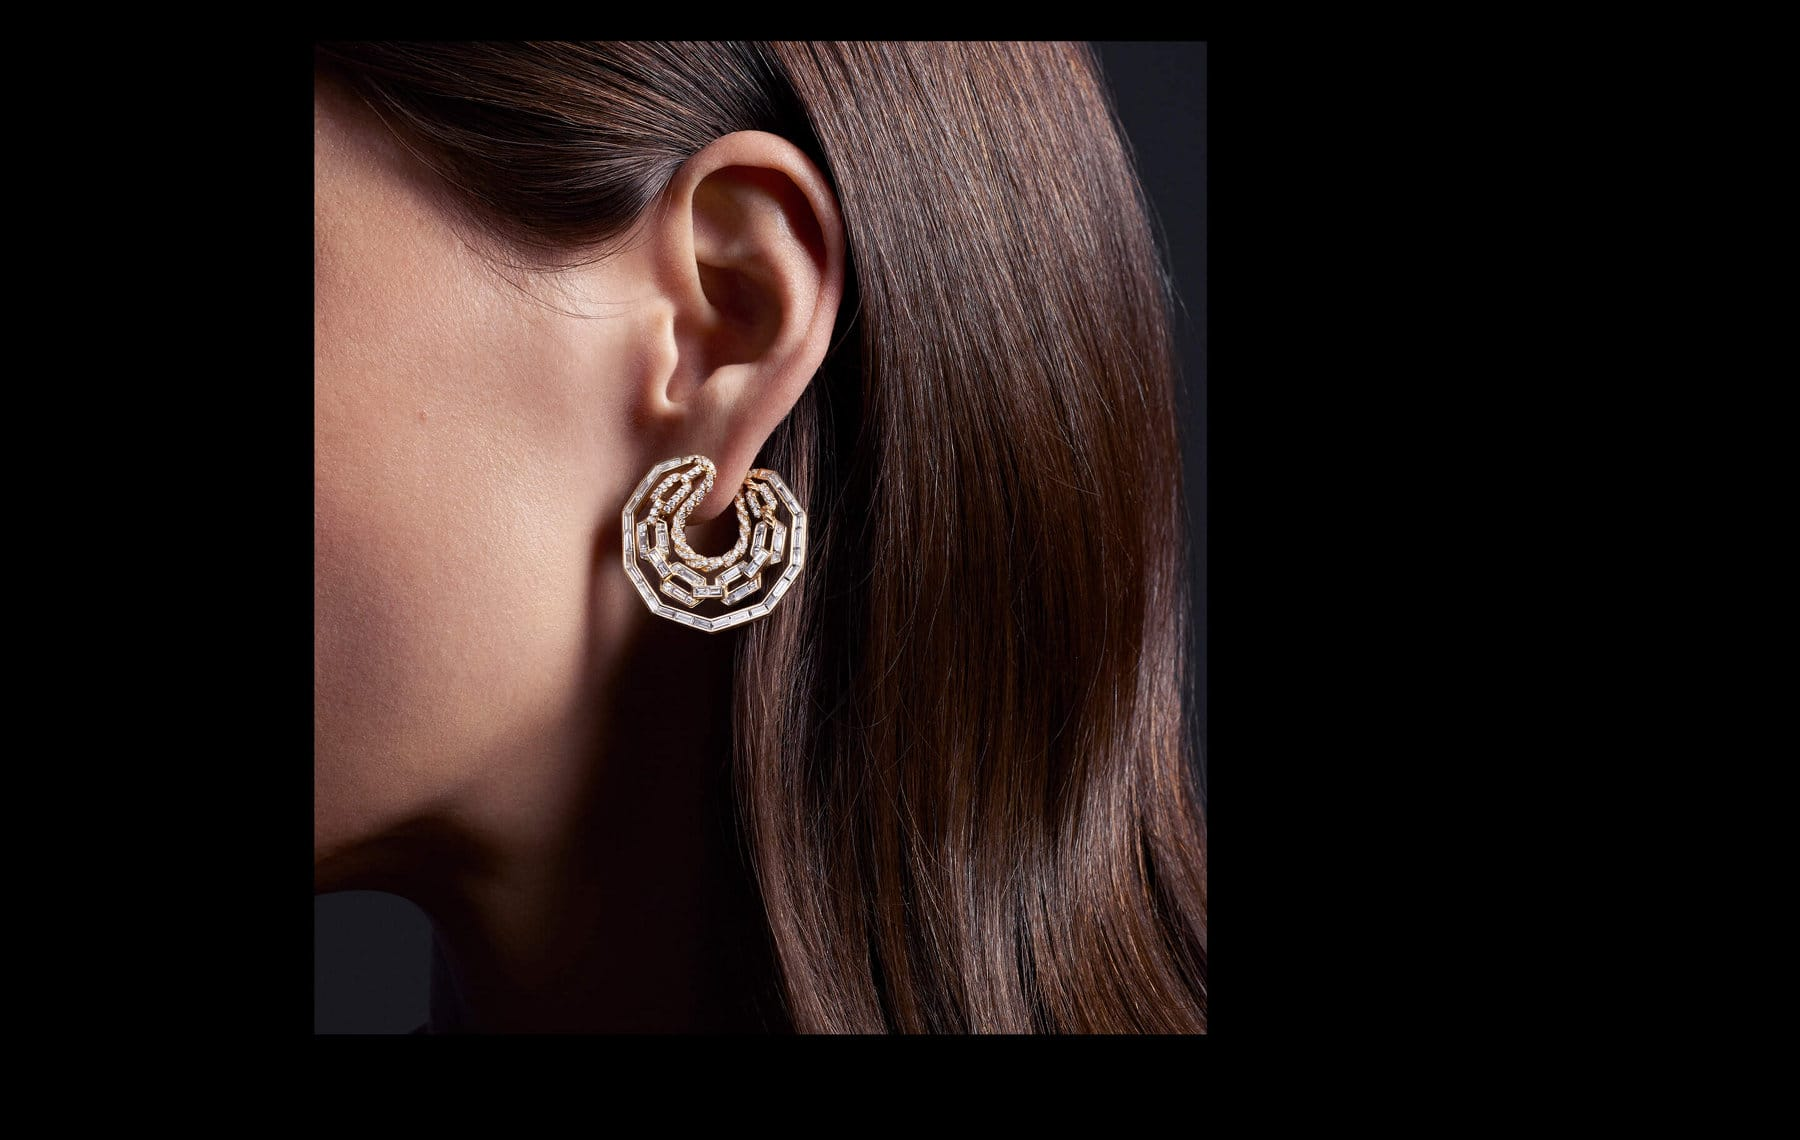 A color photo shows the side profile of a woman's head, including her left ear and straight, brown hair. Hanging from her ear is a David Yurman High Jewelry Stax hoop earrings crafted from 18K yellow gold and fully set with brilliant-, baguette- and custom-cut white diamonds.